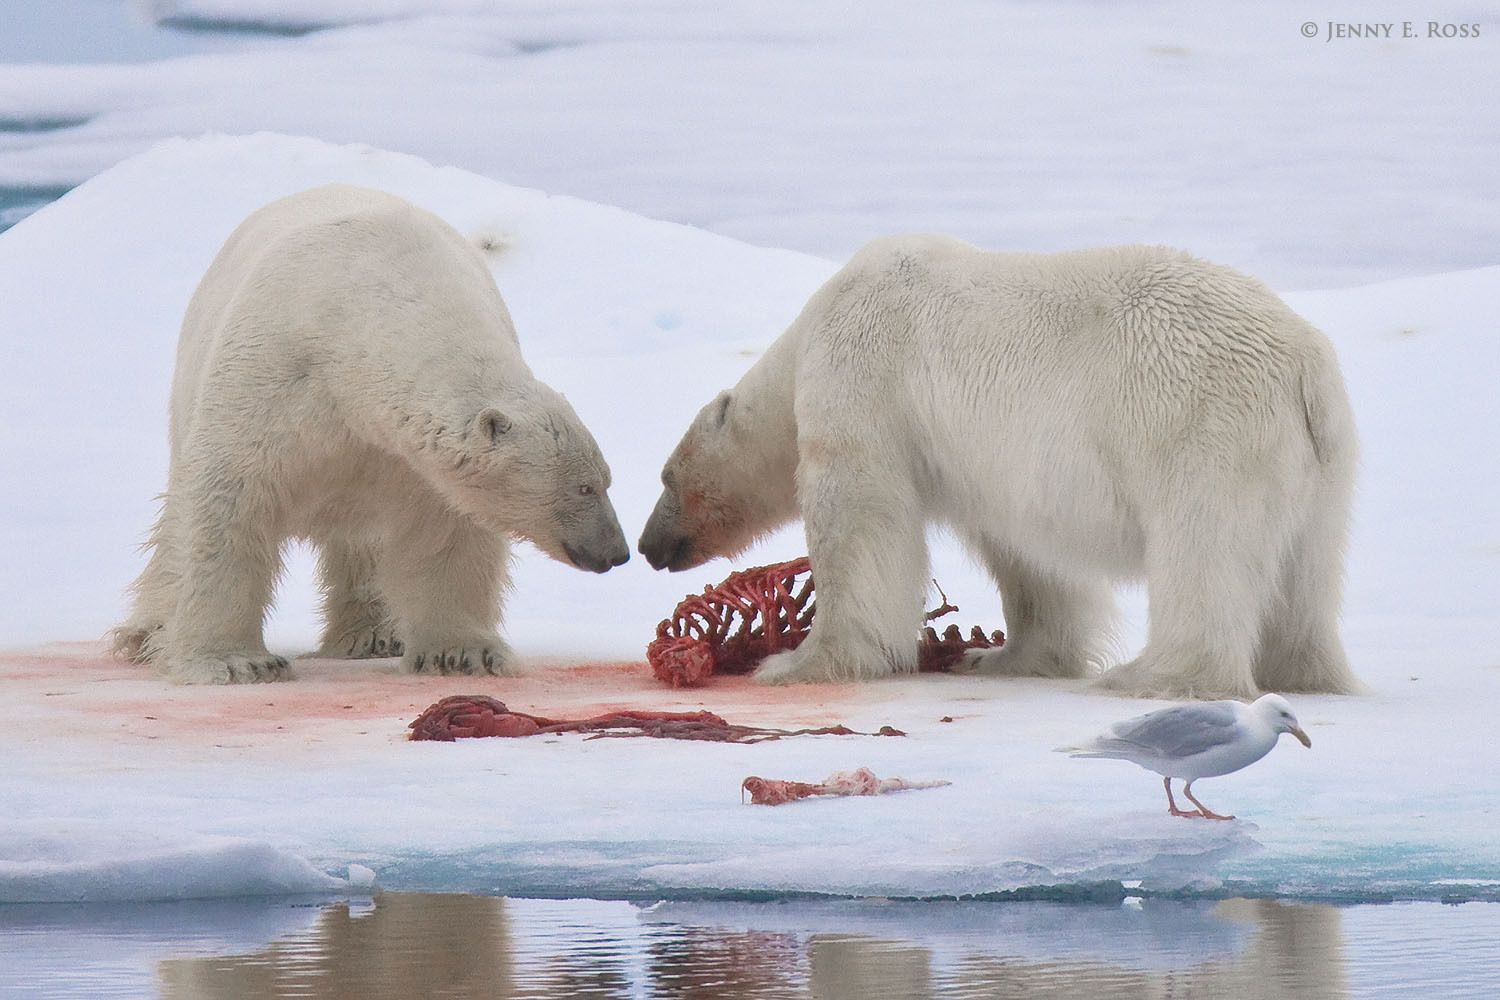 Two large, mature adult male polar bears (Ursus maritimus) confront one another on the sea ice at a seal kill site. Arctic Ocean north of the Svalbard Archipelago, near 81-degrees North.